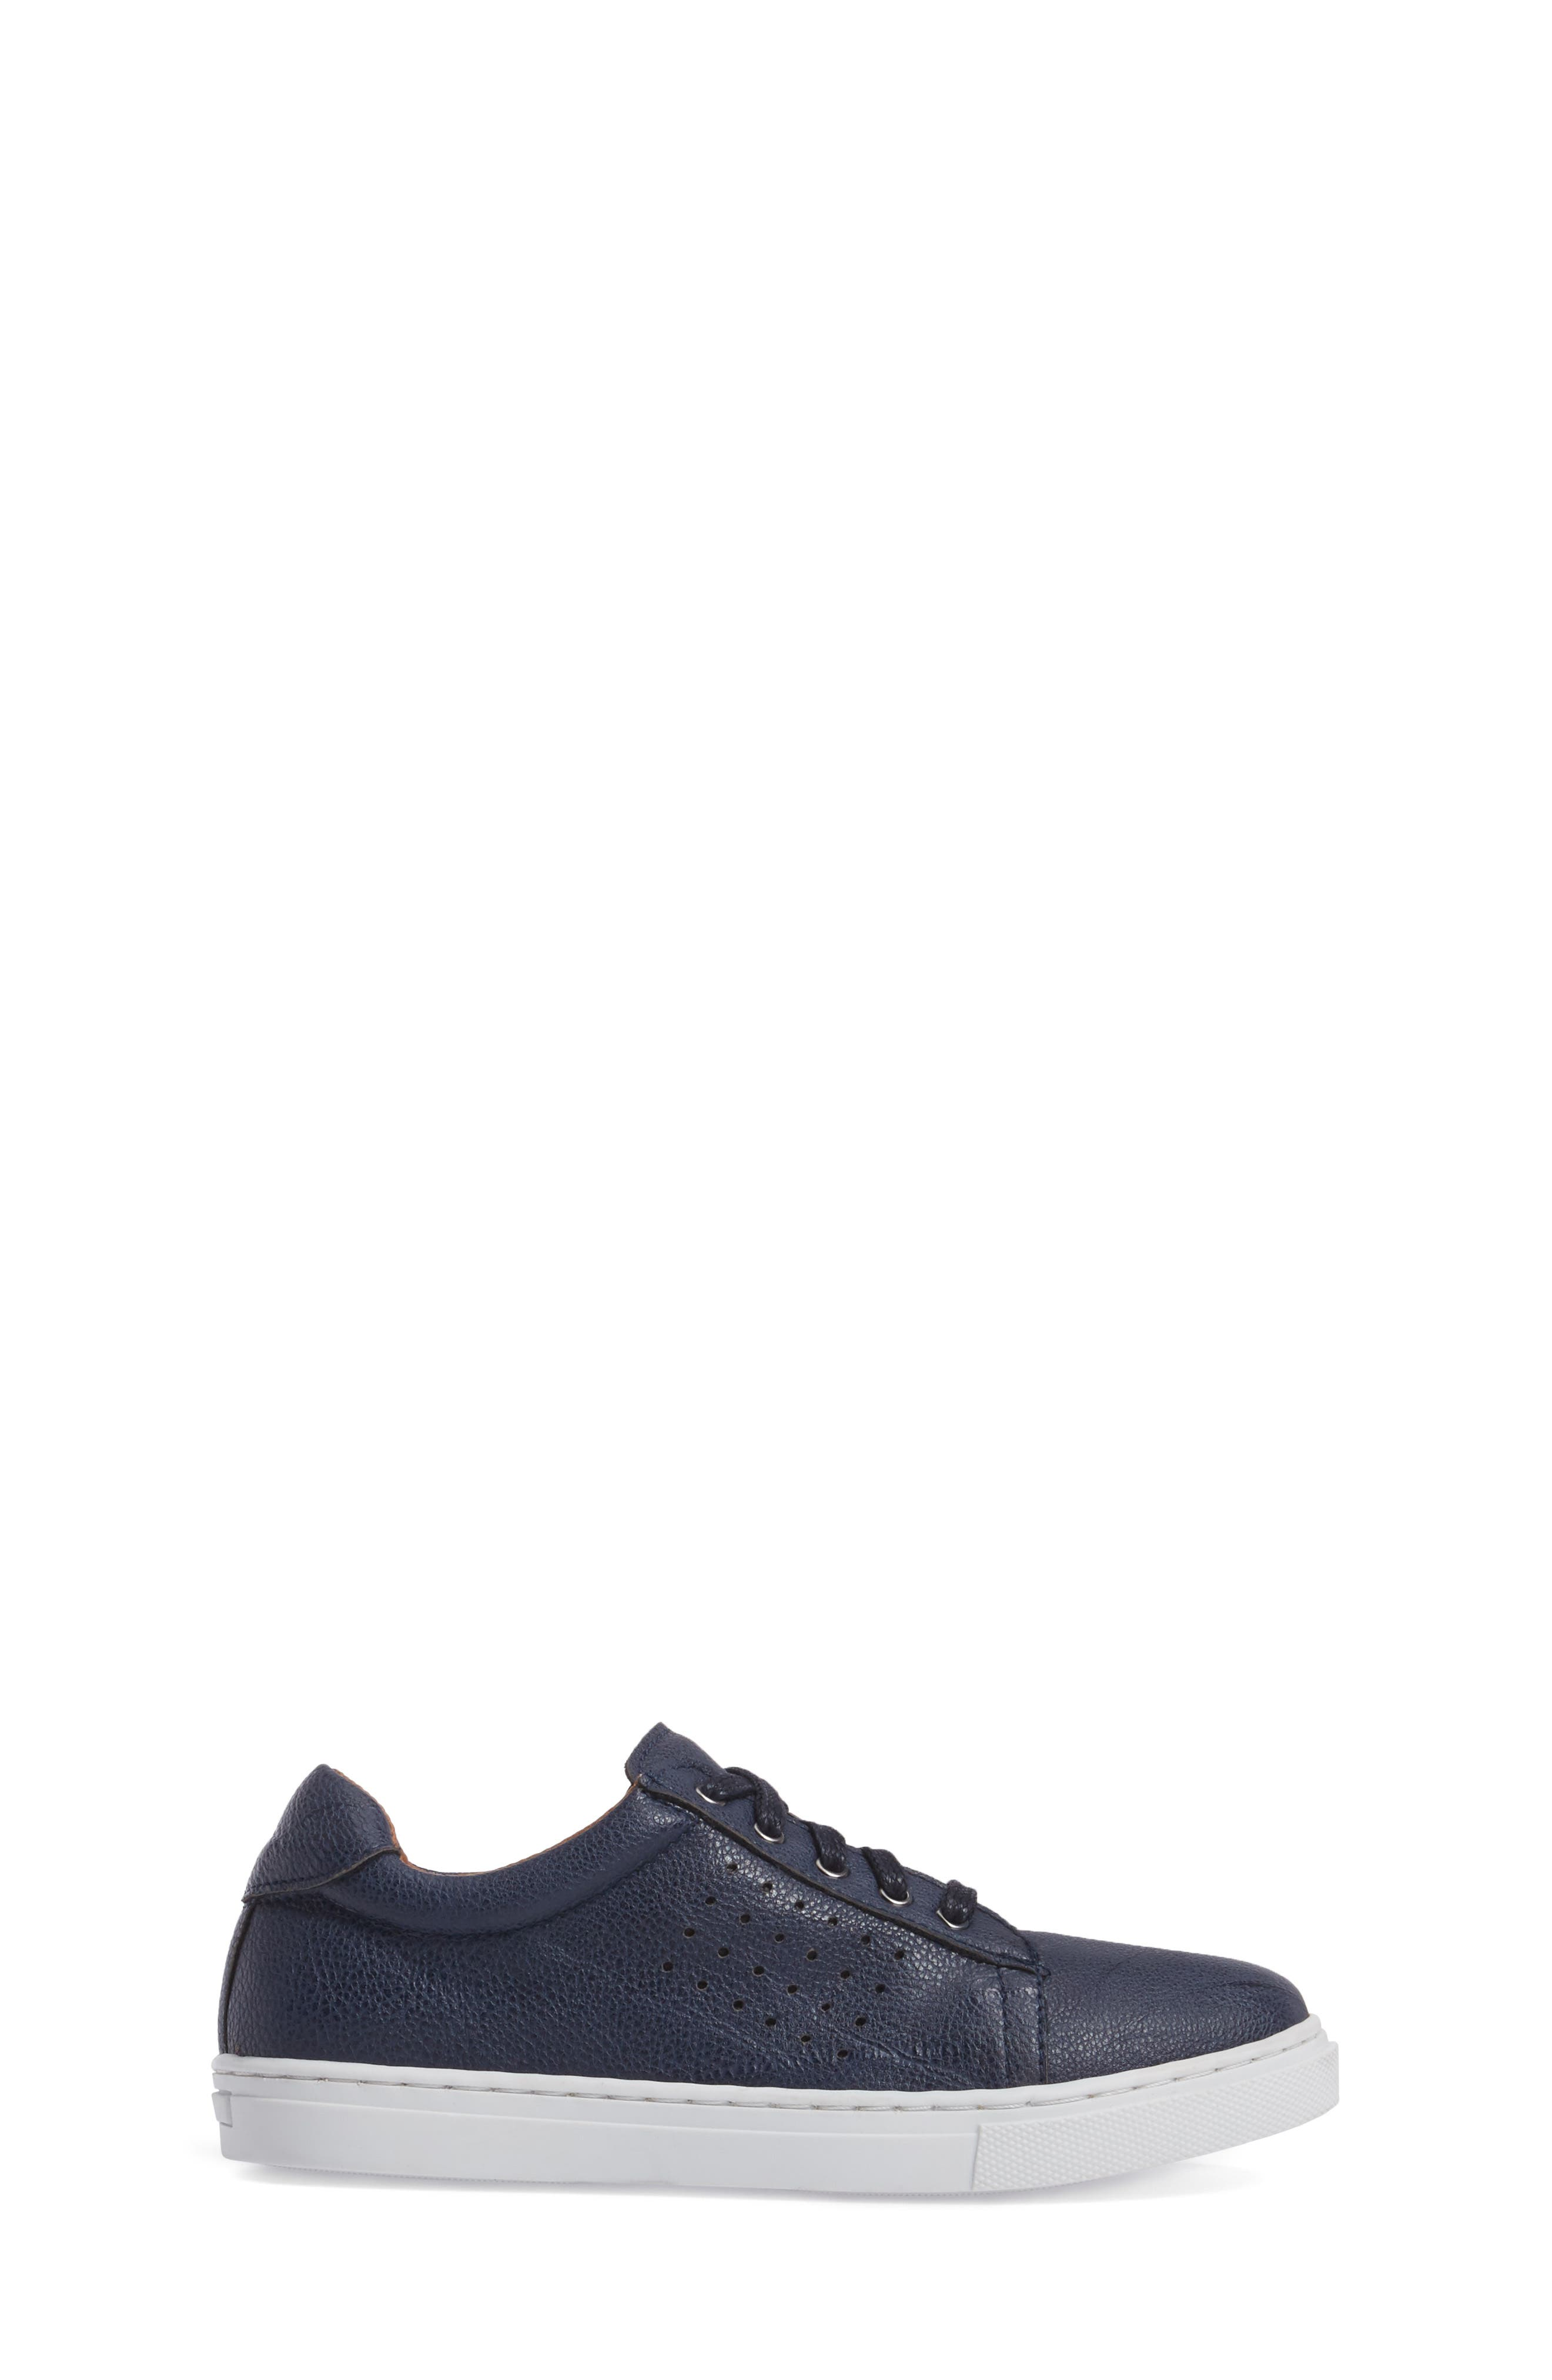 Grafte Perforated Sneaker,                             Alternate thumbnail 3, color,                             Navy